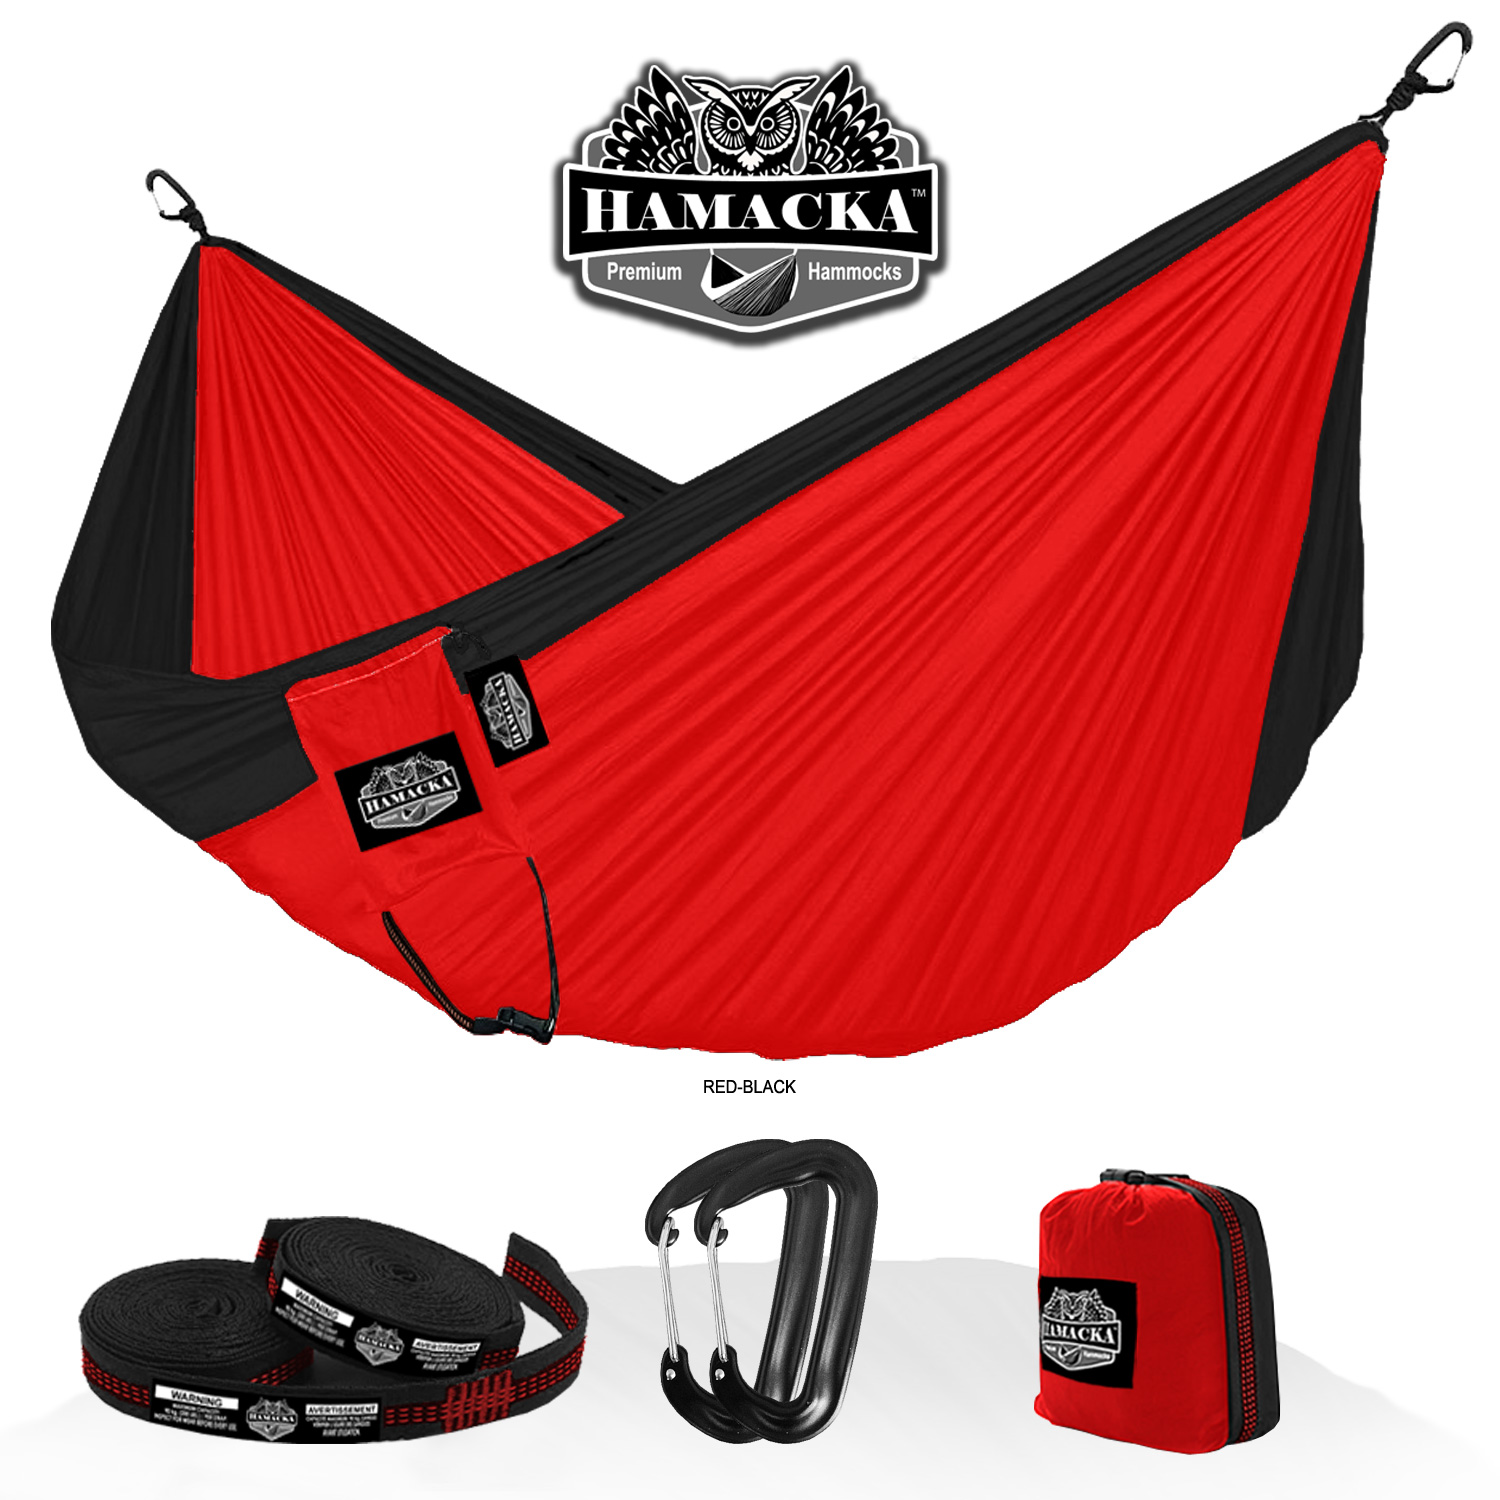 TRAVEL HAMMOCK SET (RED)